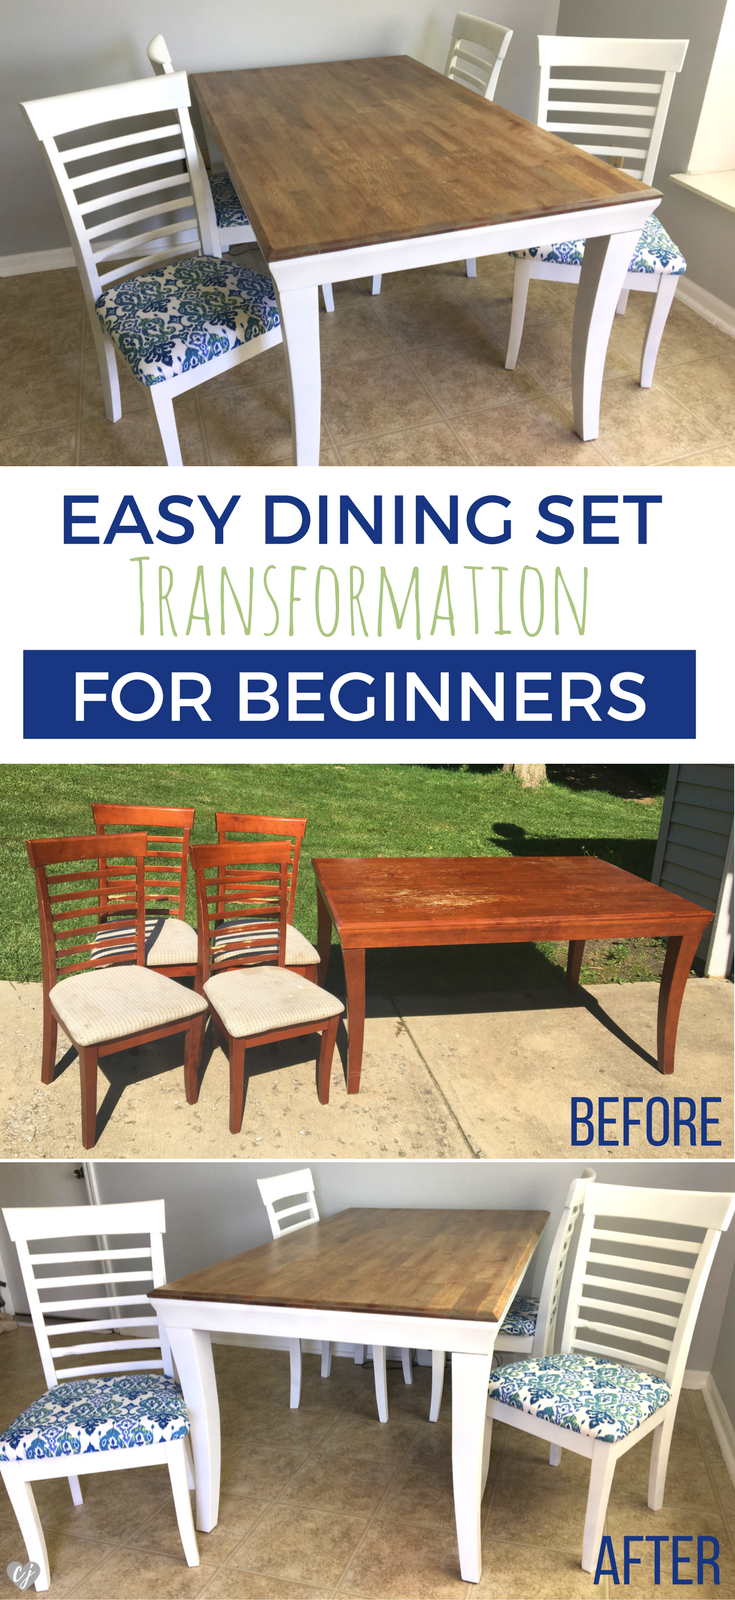 Easy Dining Set Transformation For Beginners